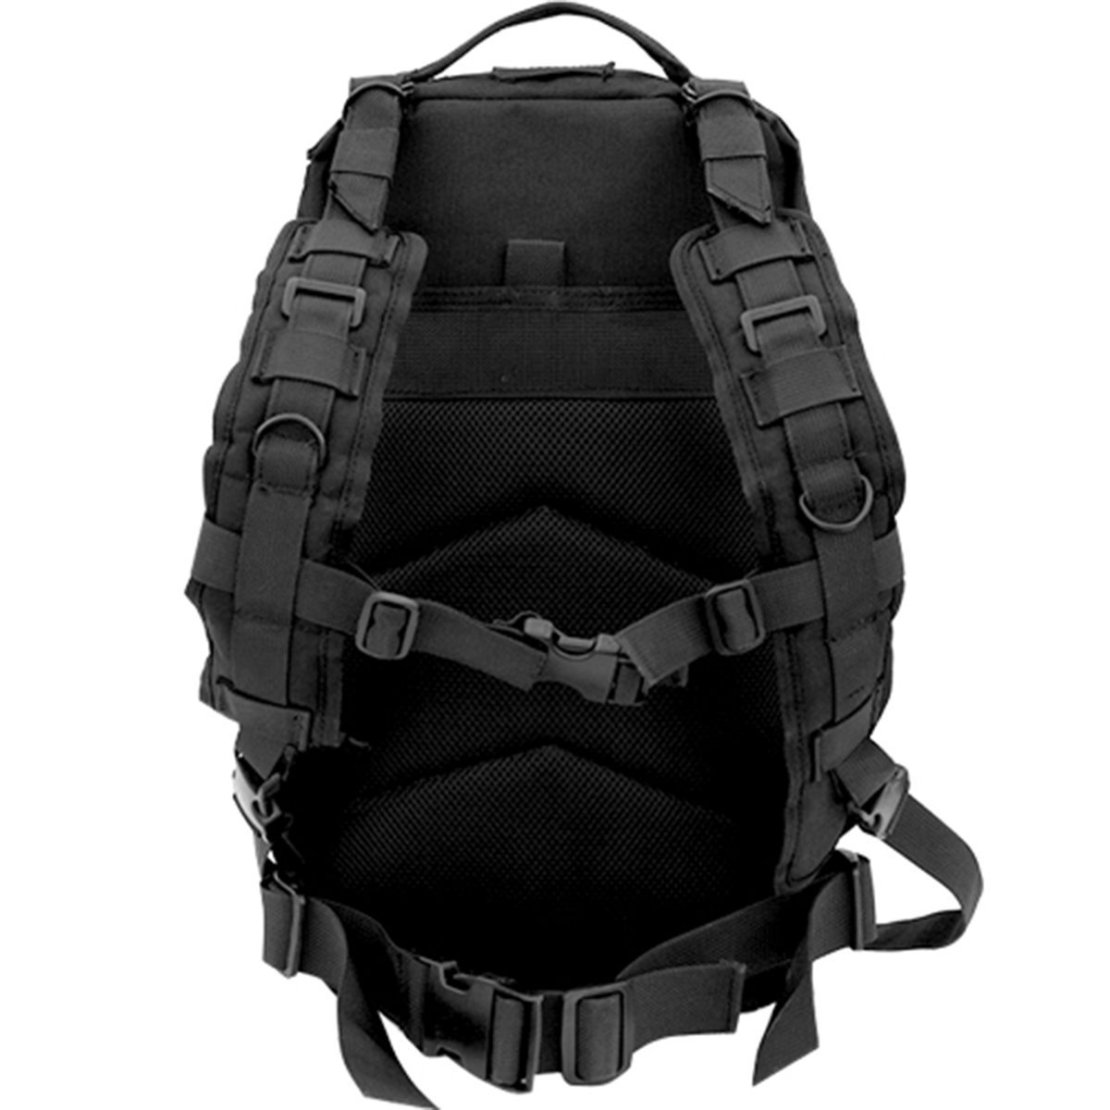 d2c995b0f5 Pros. There are several advantages you get from the CVLIFE military  tactical backpack.